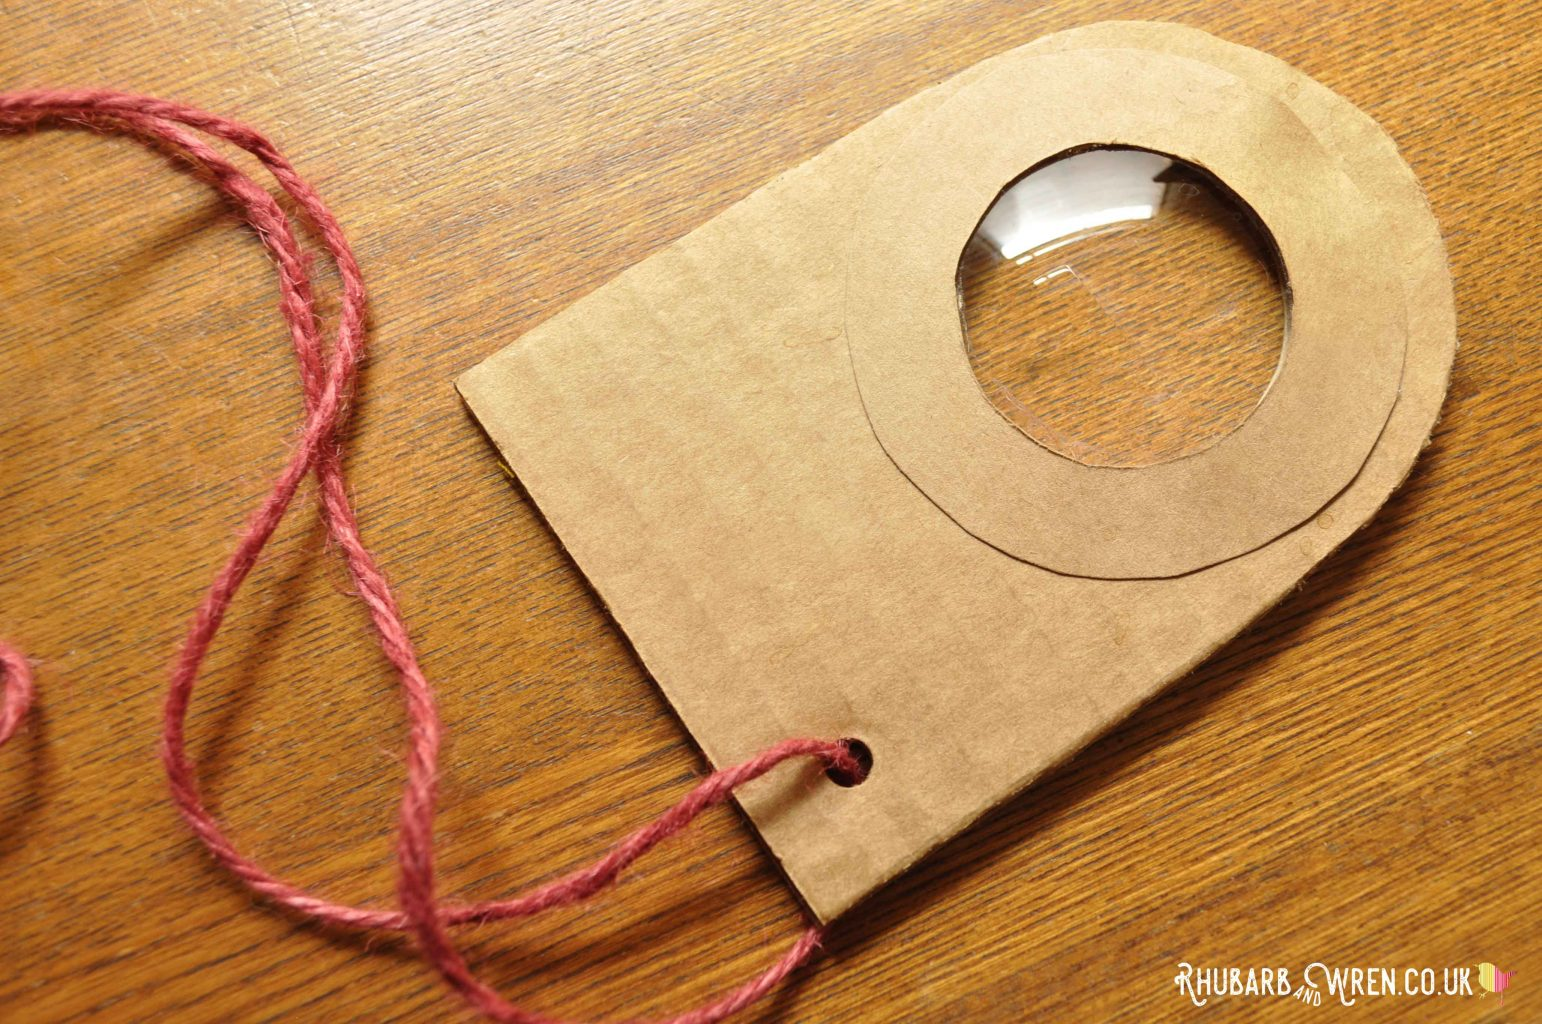 A home-made real magnifying glass made from cardboard